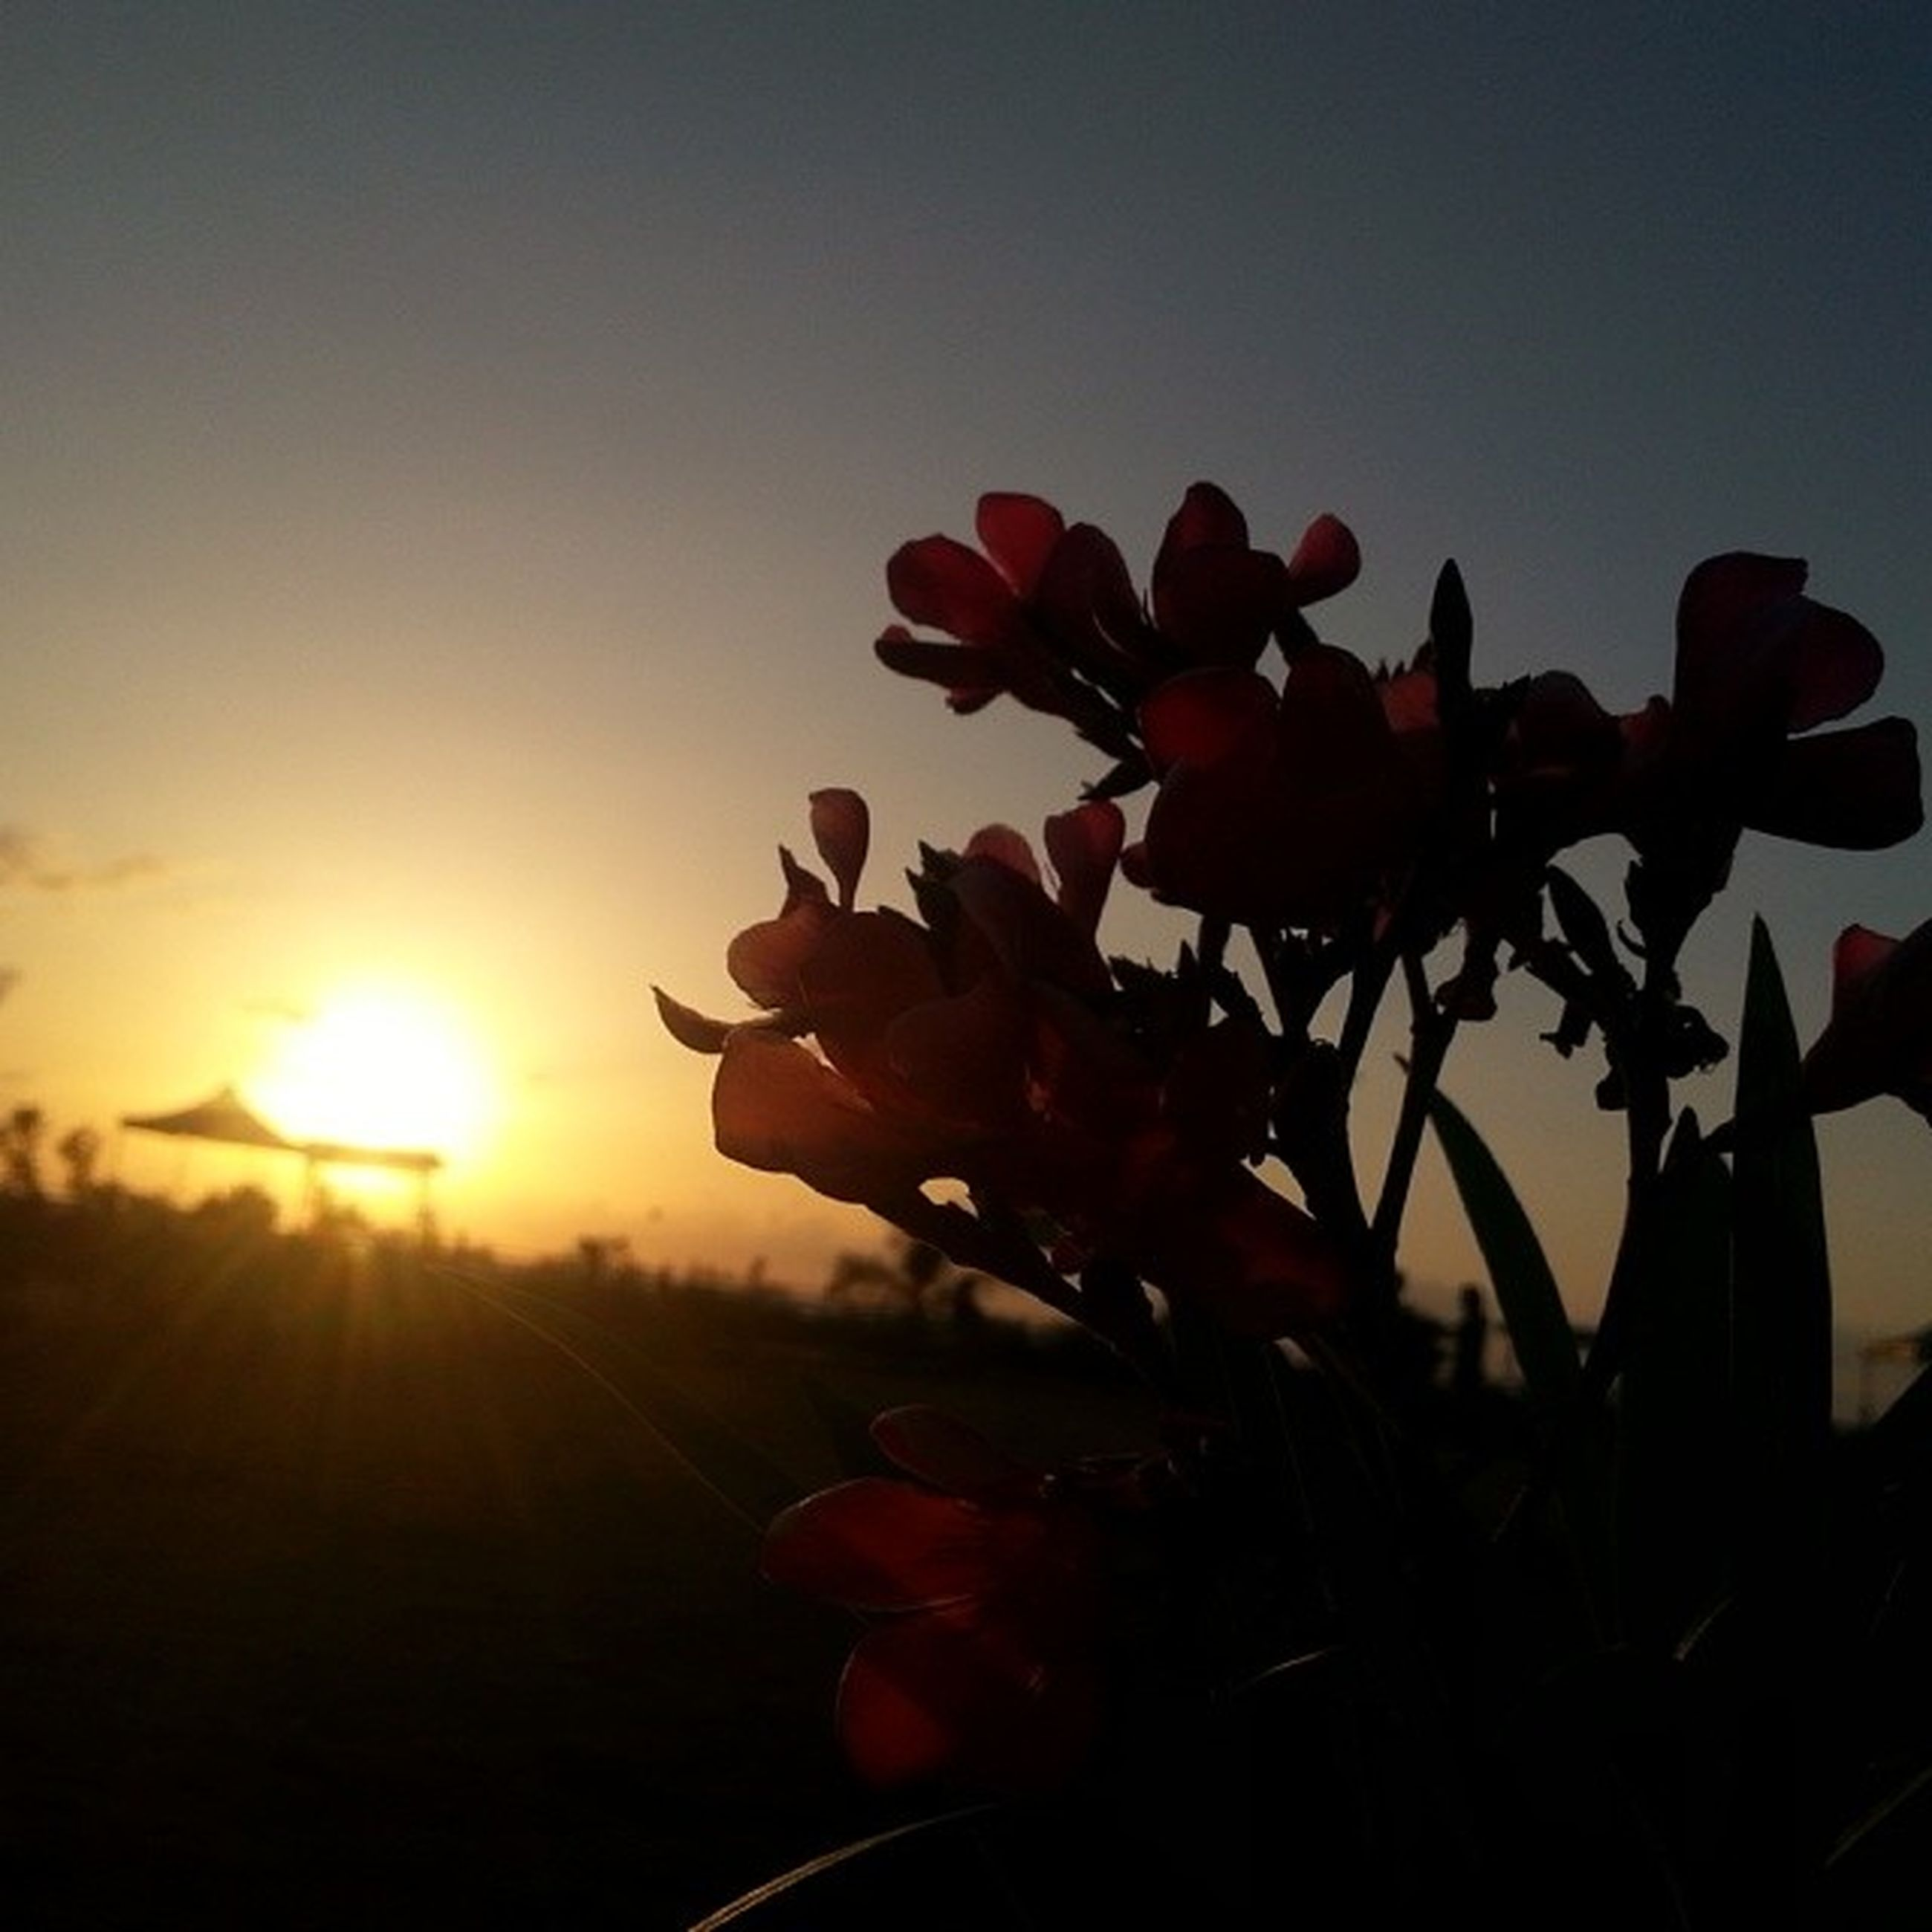 flower, sun, growth, beauty in nature, freshness, nature, sunset, plant, sunlight, fragility, petal, sky, clear sky, close-up, stem, red, focus on foreground, field, sunbeam, silhouette